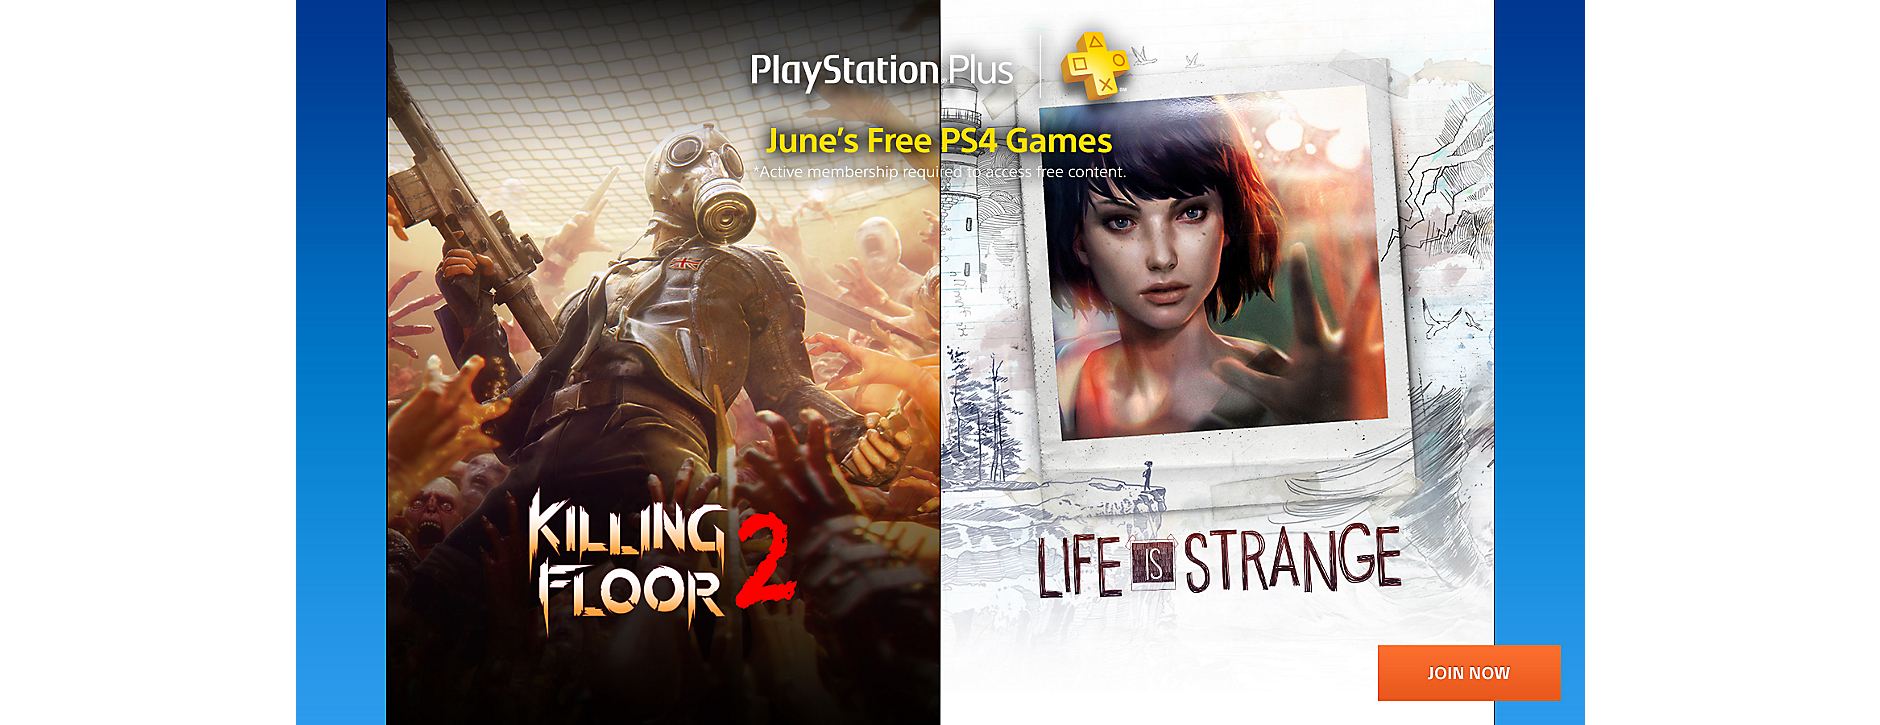 psplus-homepage-marquee-portal-02-us-06jun17